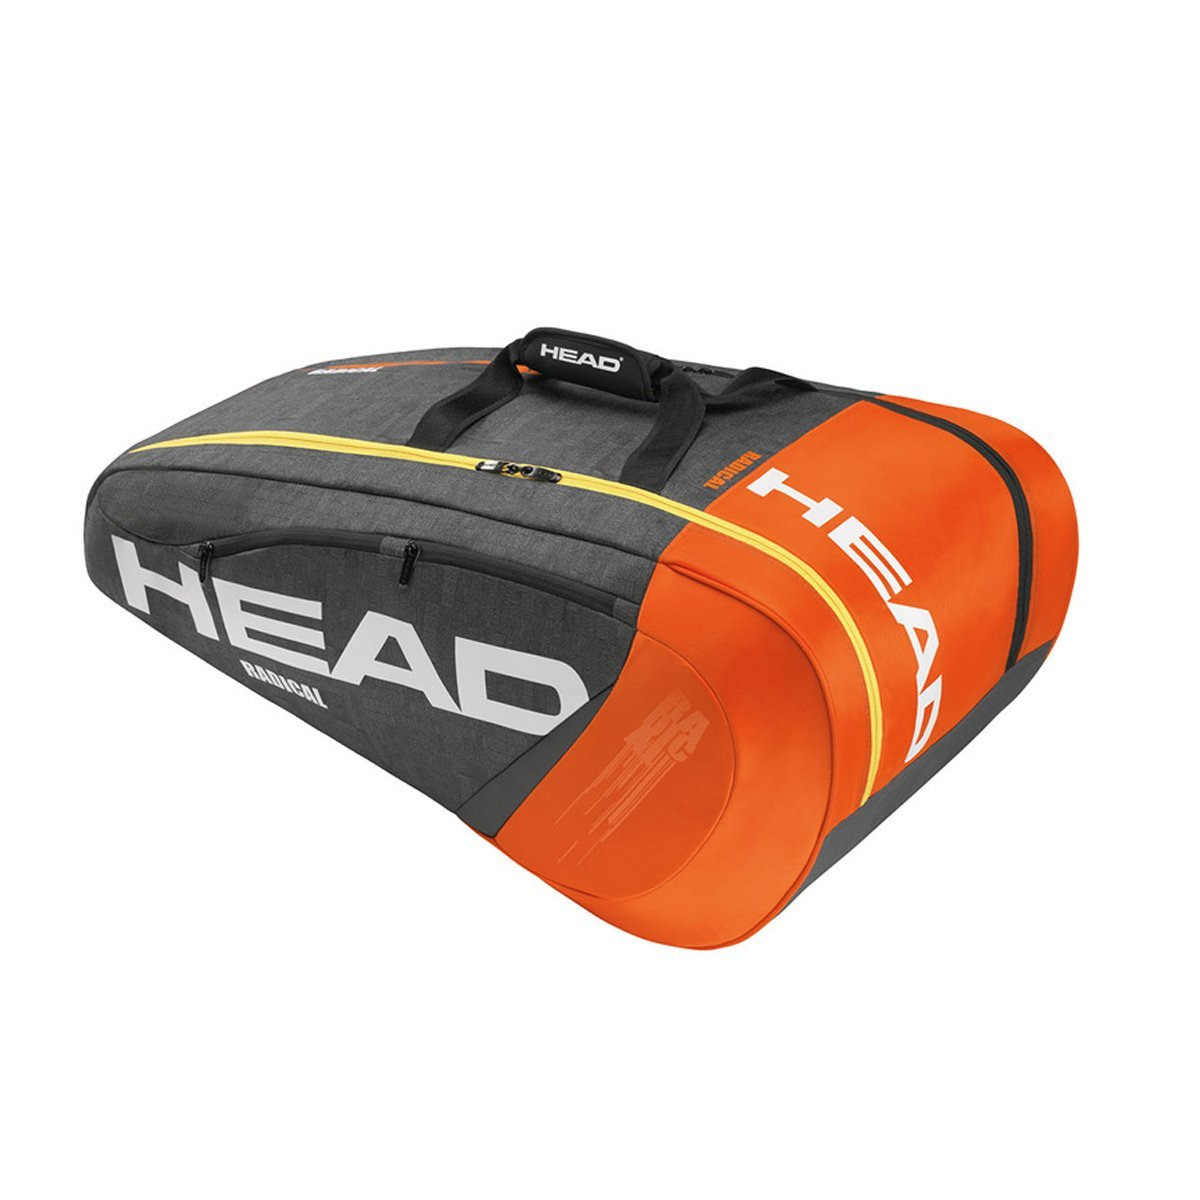 Head Radical 9R Supercombi Tennis Bag-Orange/Charcoal